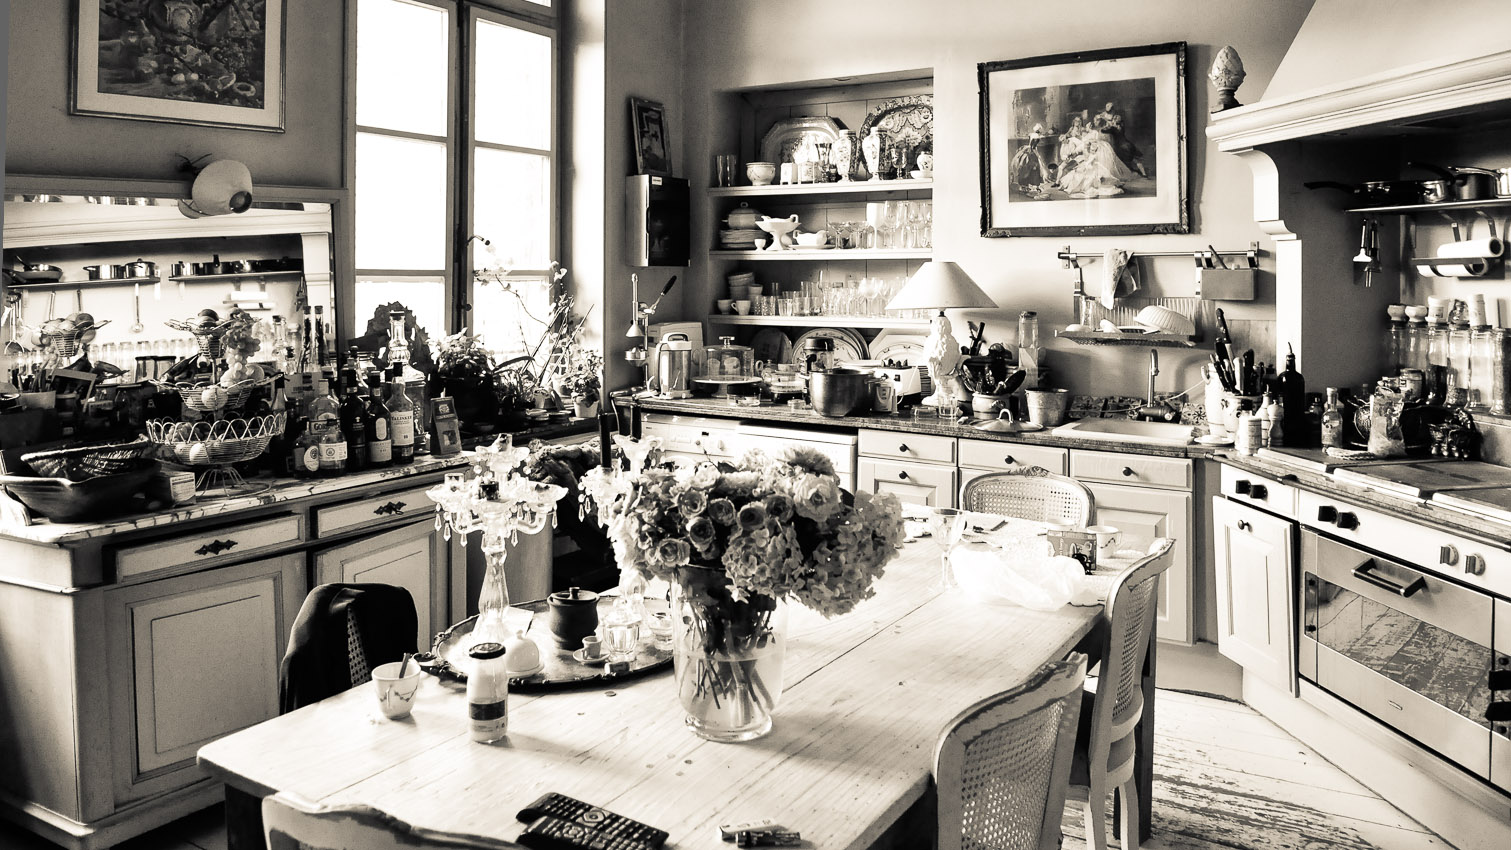 19s-cuisine-kitchen-location-vente-decors-film-cinema-photo-belgium-bruxelles